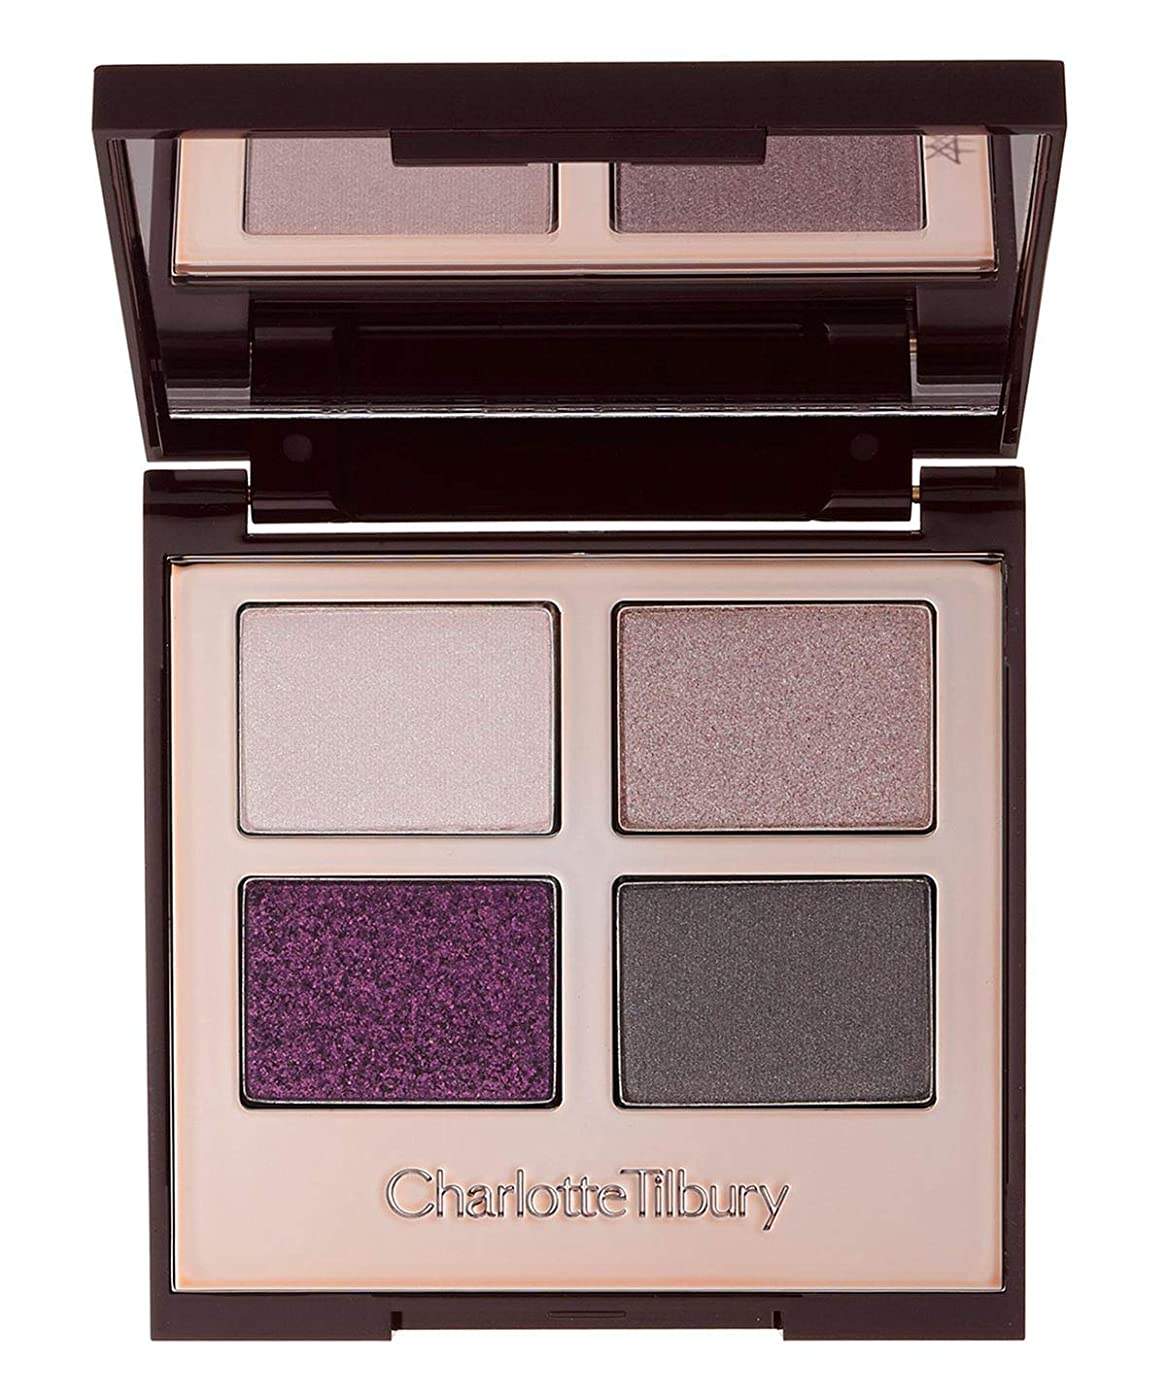 ヘクタールフォージ広くCHARLOTTE TILBURY Luxury Palette - The Glamour Muse 5.2g